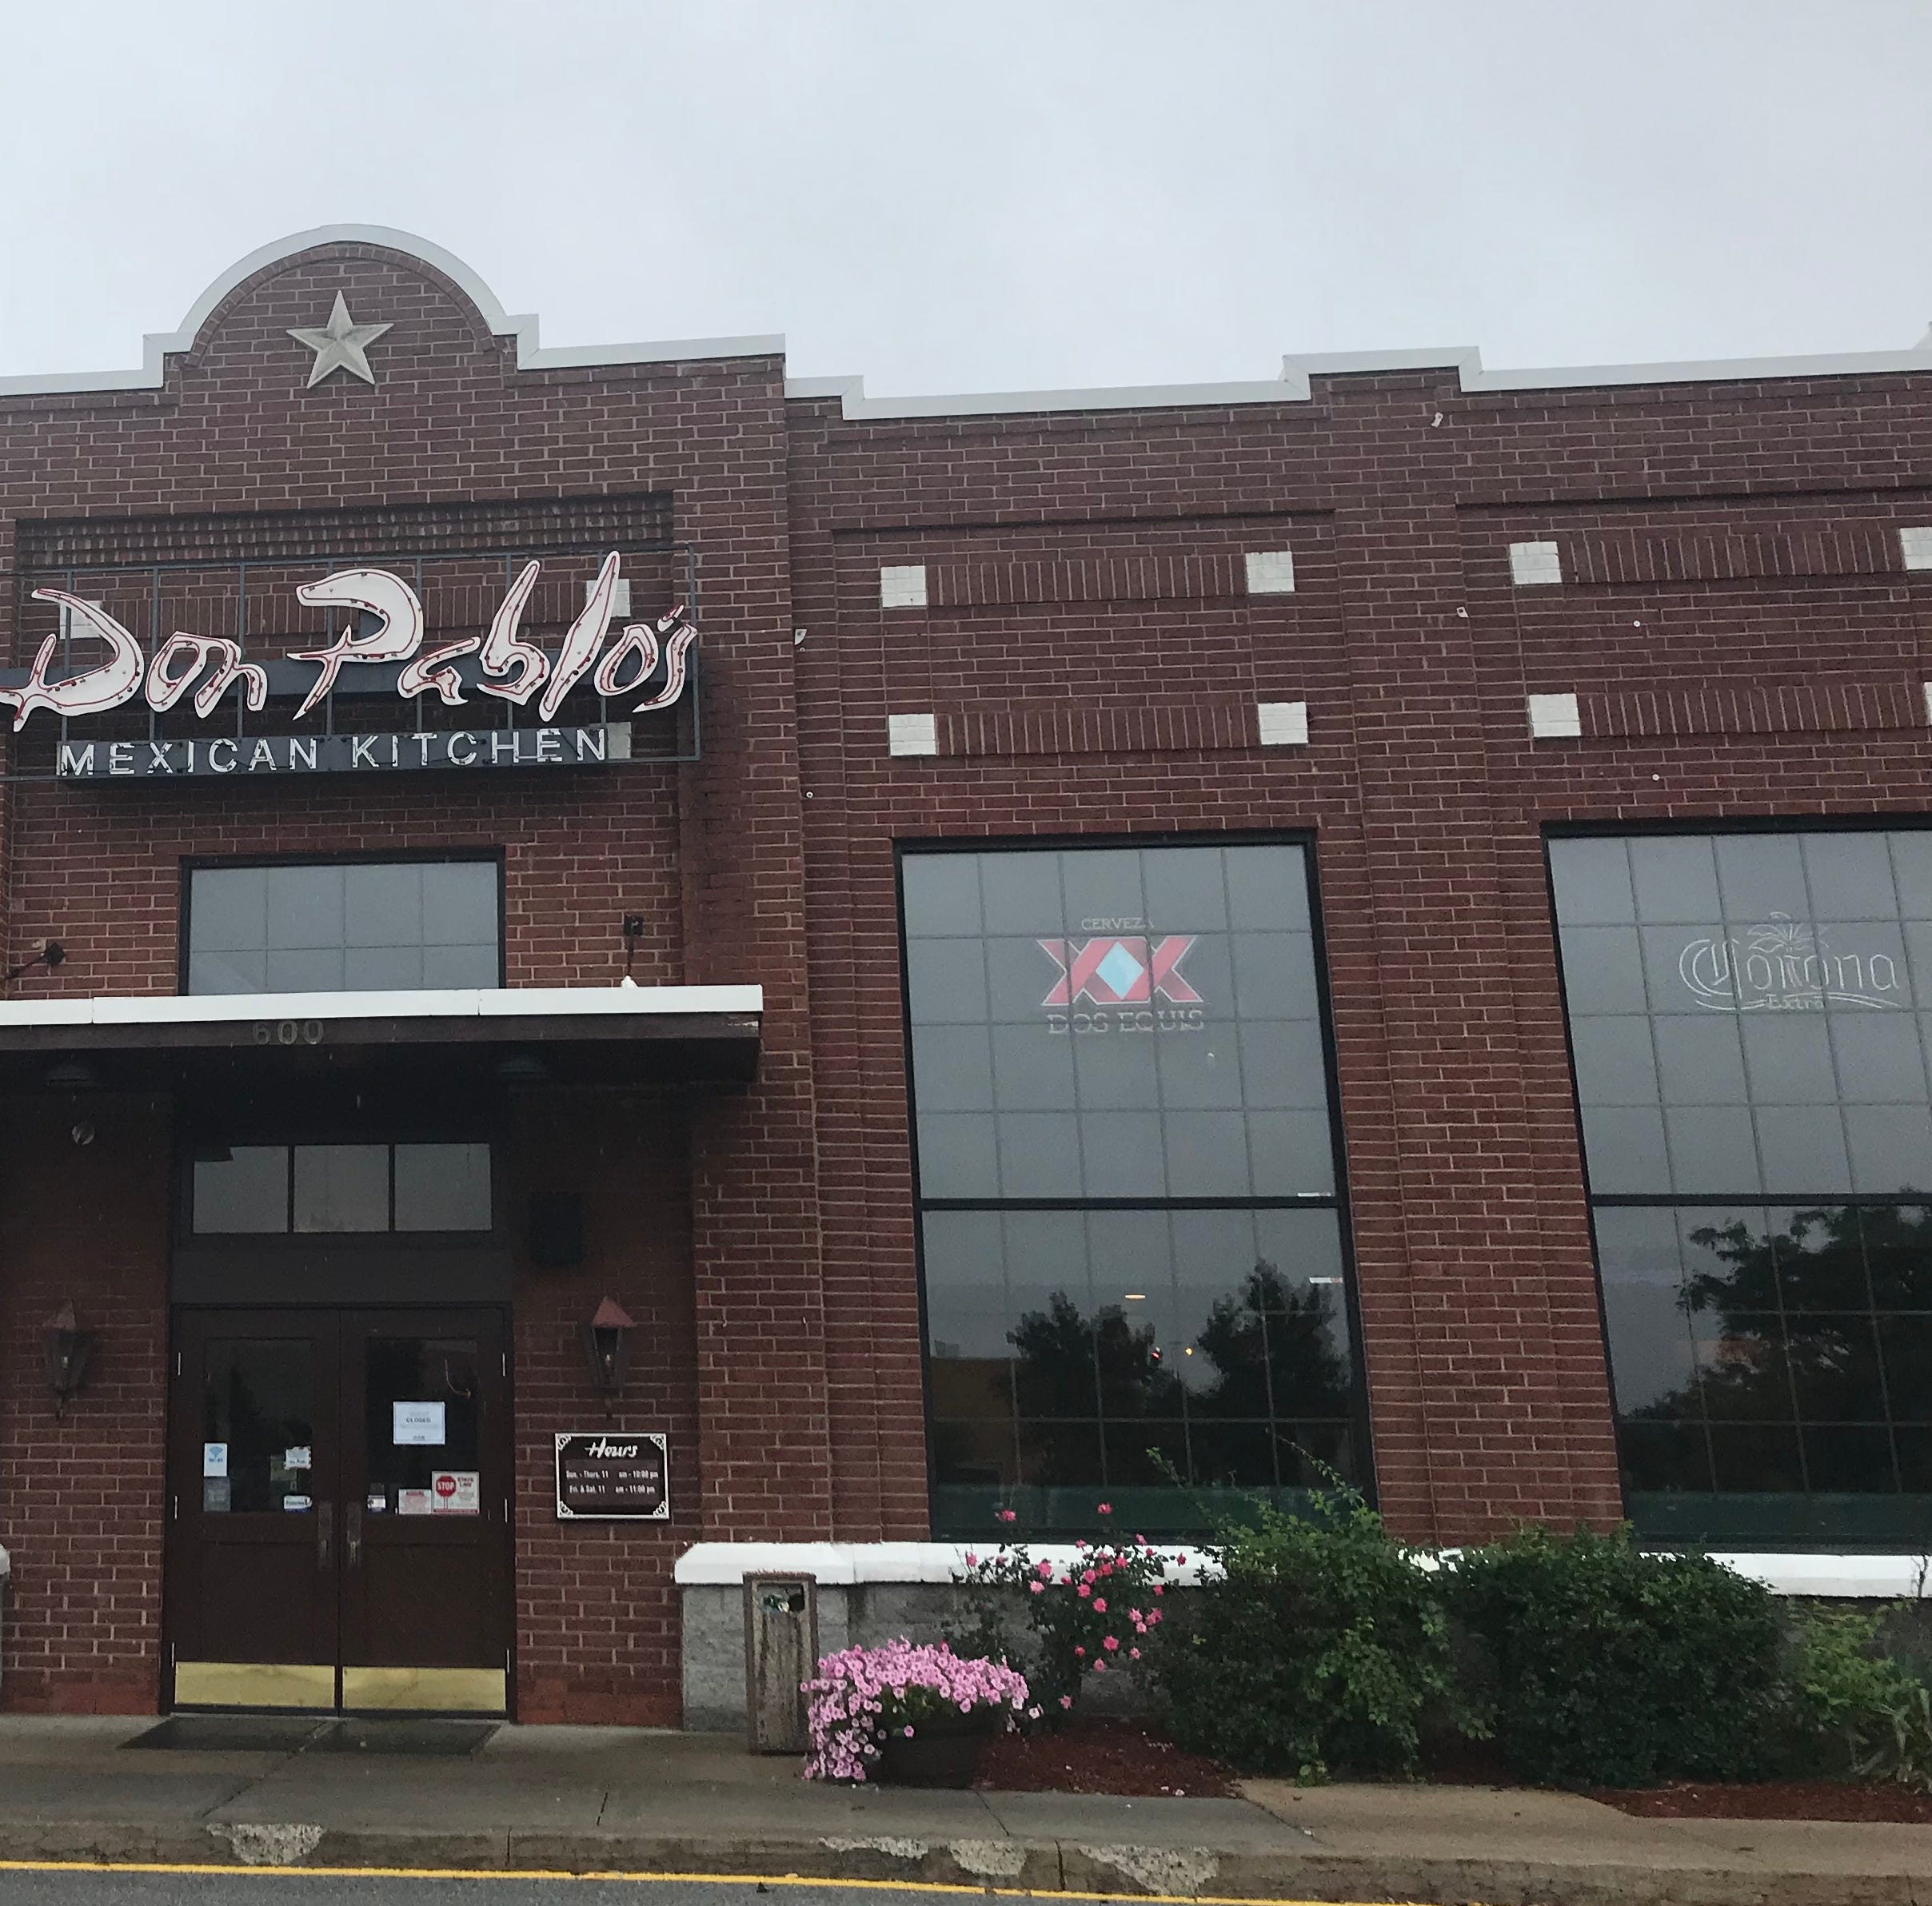 Restaurant managers say they'll hire Don Pablo's employees who lost their jobs